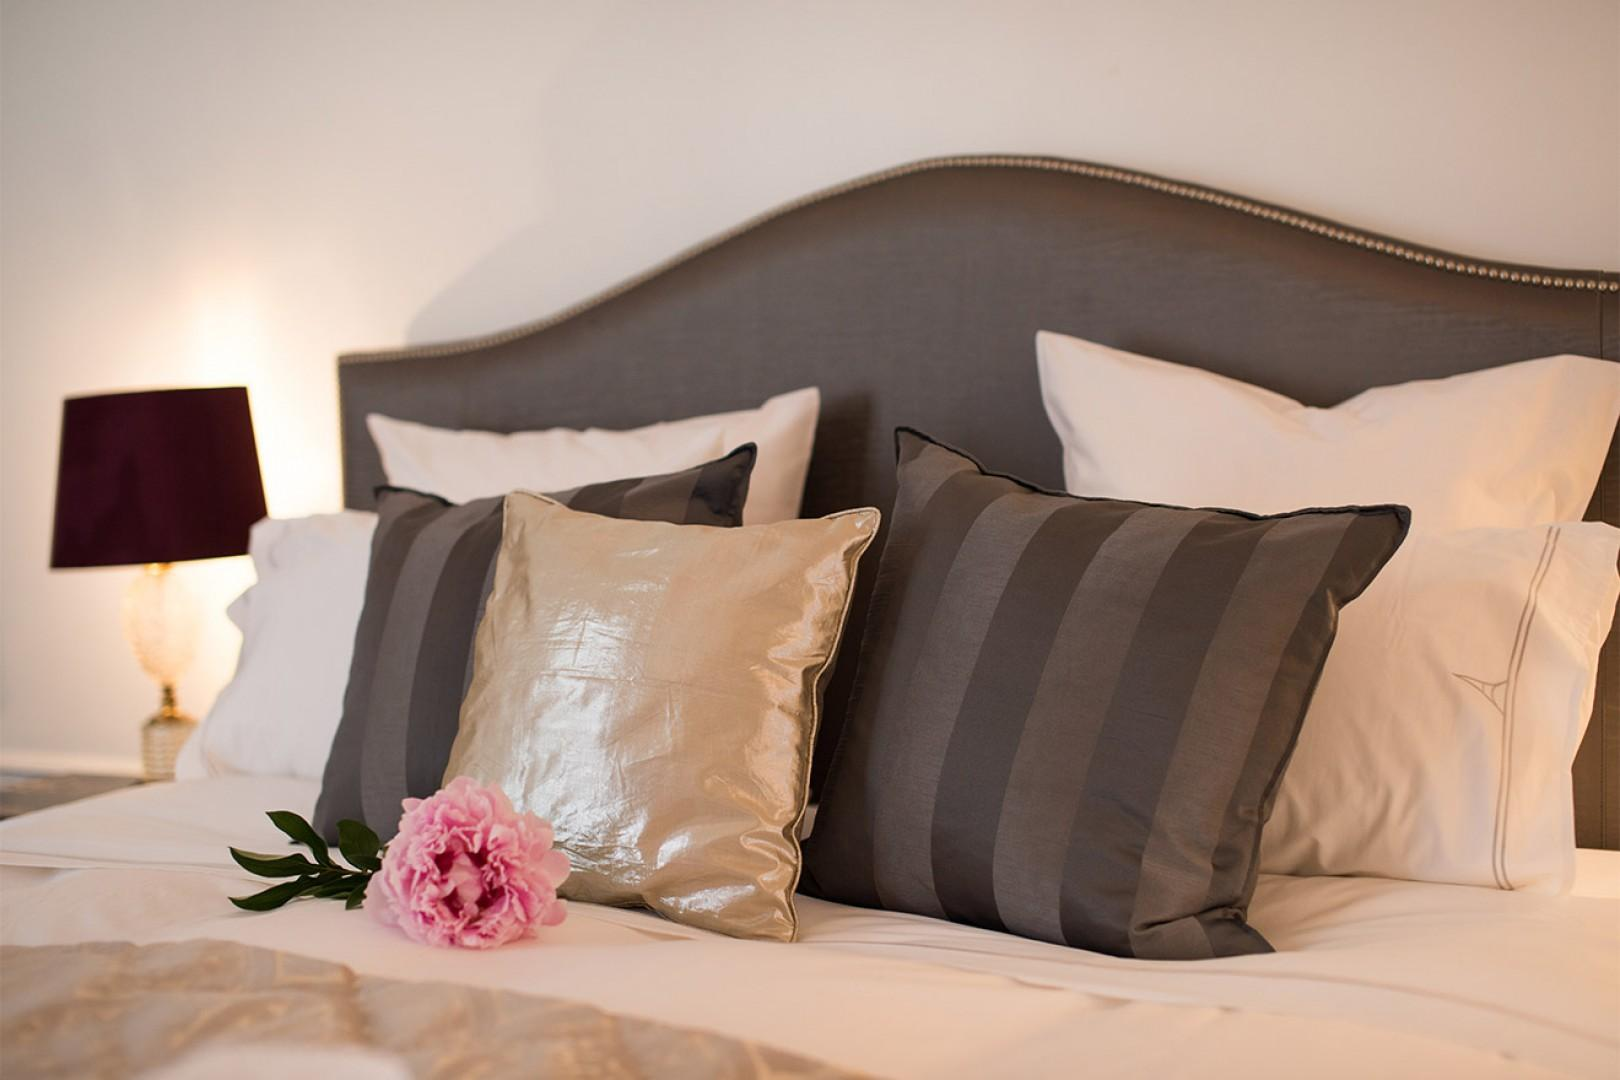 Enjoy lazy mornings in bed during your stay!